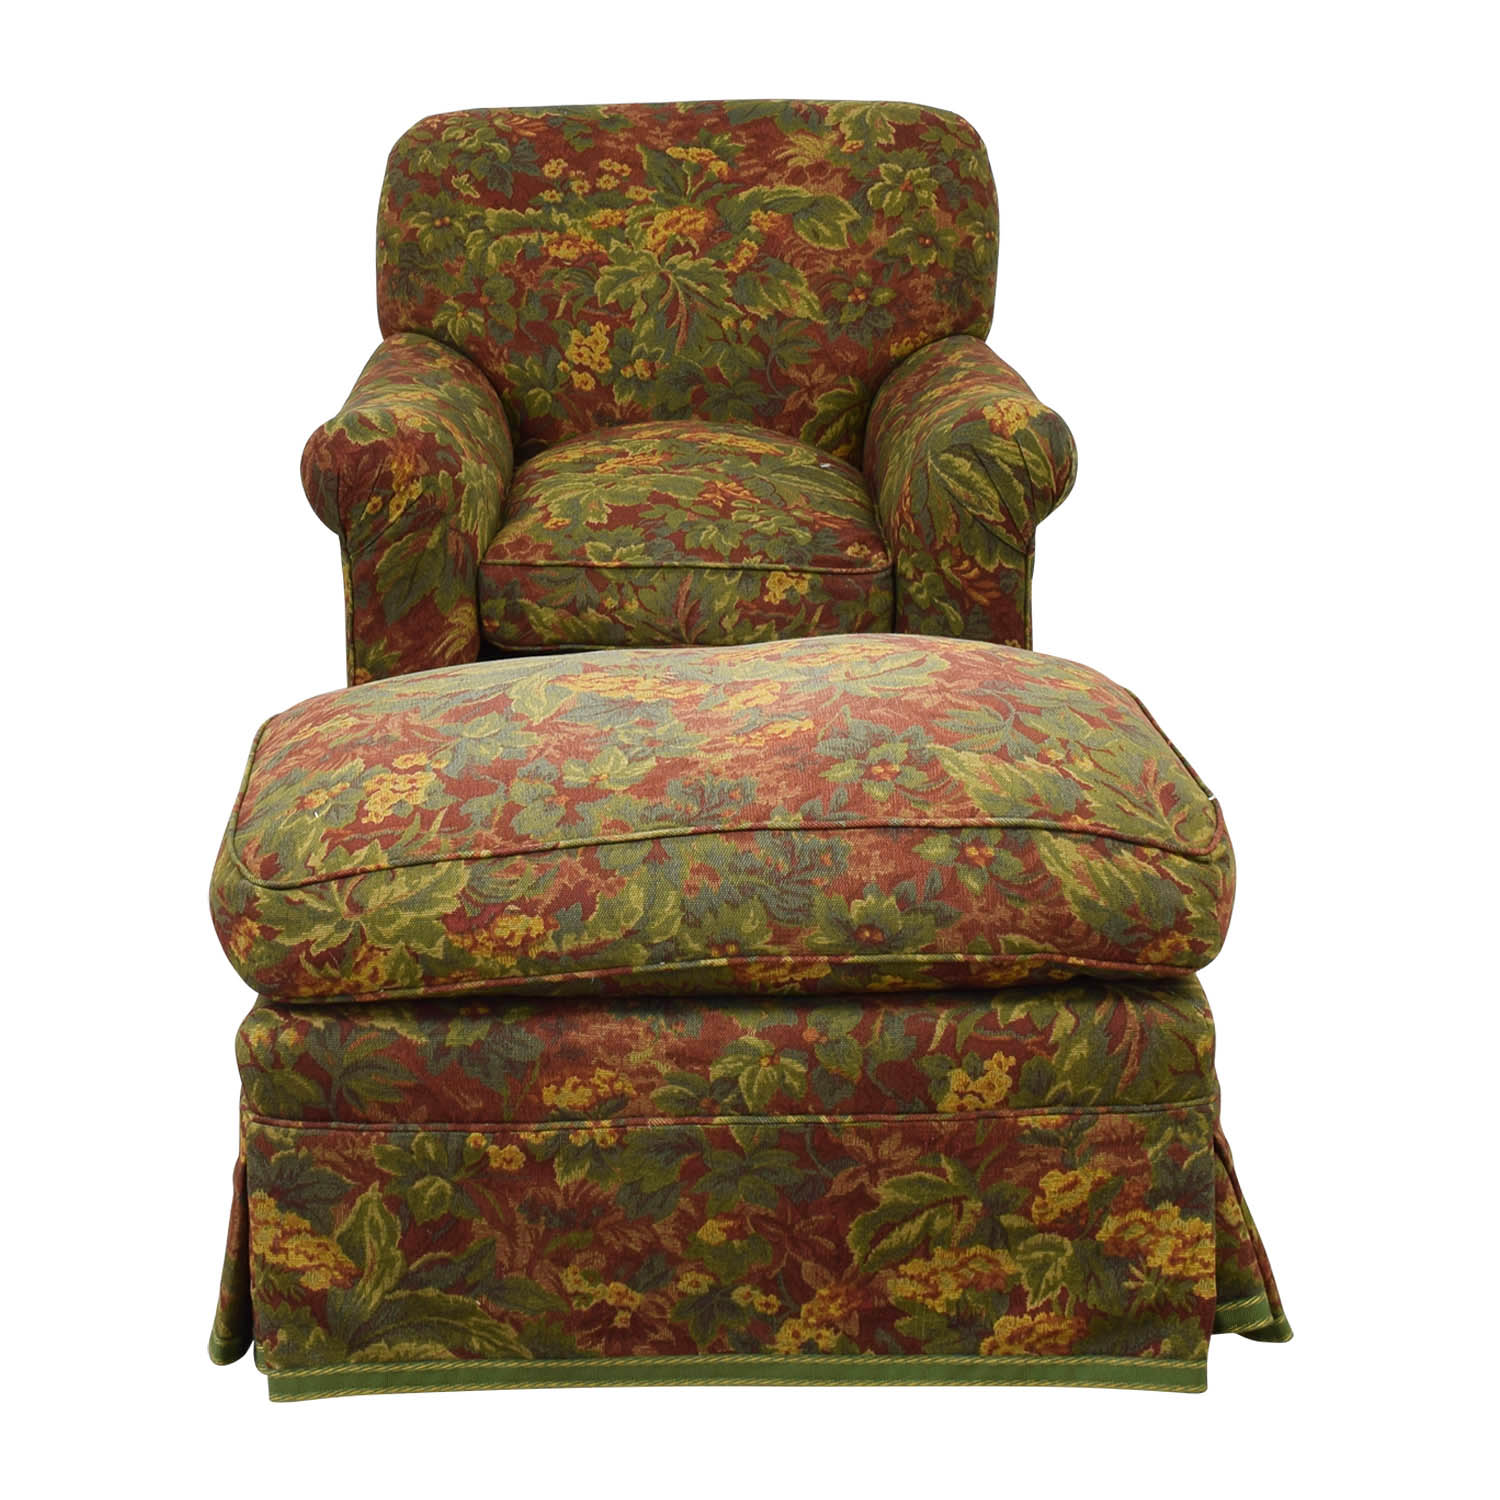 Down Filled Floral Accent Chair and Ottoman Accent Chairs